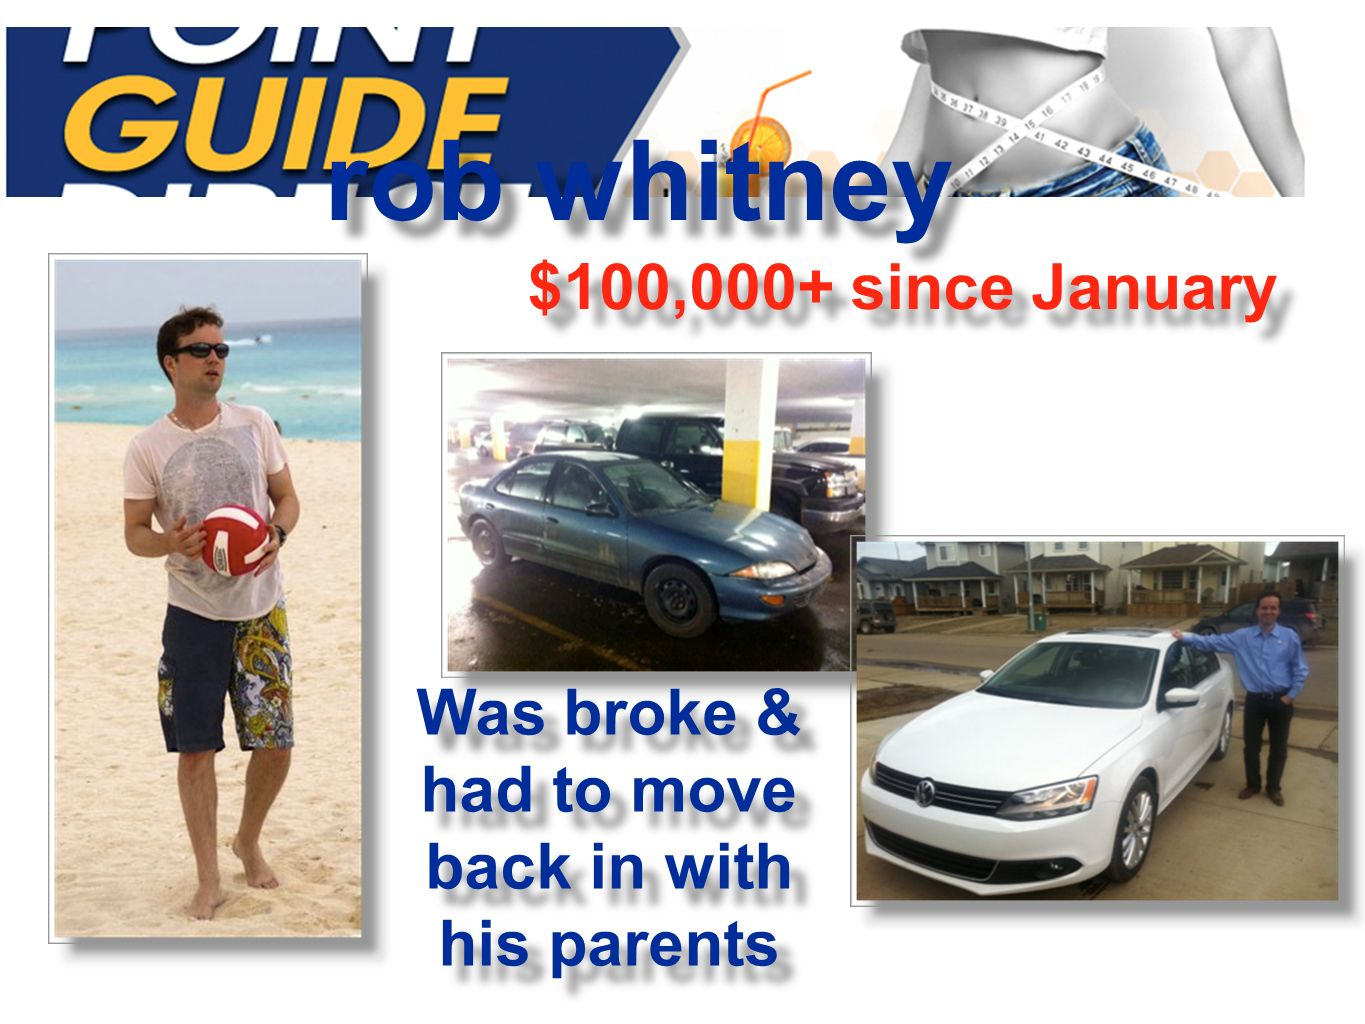 $100,000+ since January rob whitney Was broke & had to move back in with his parents